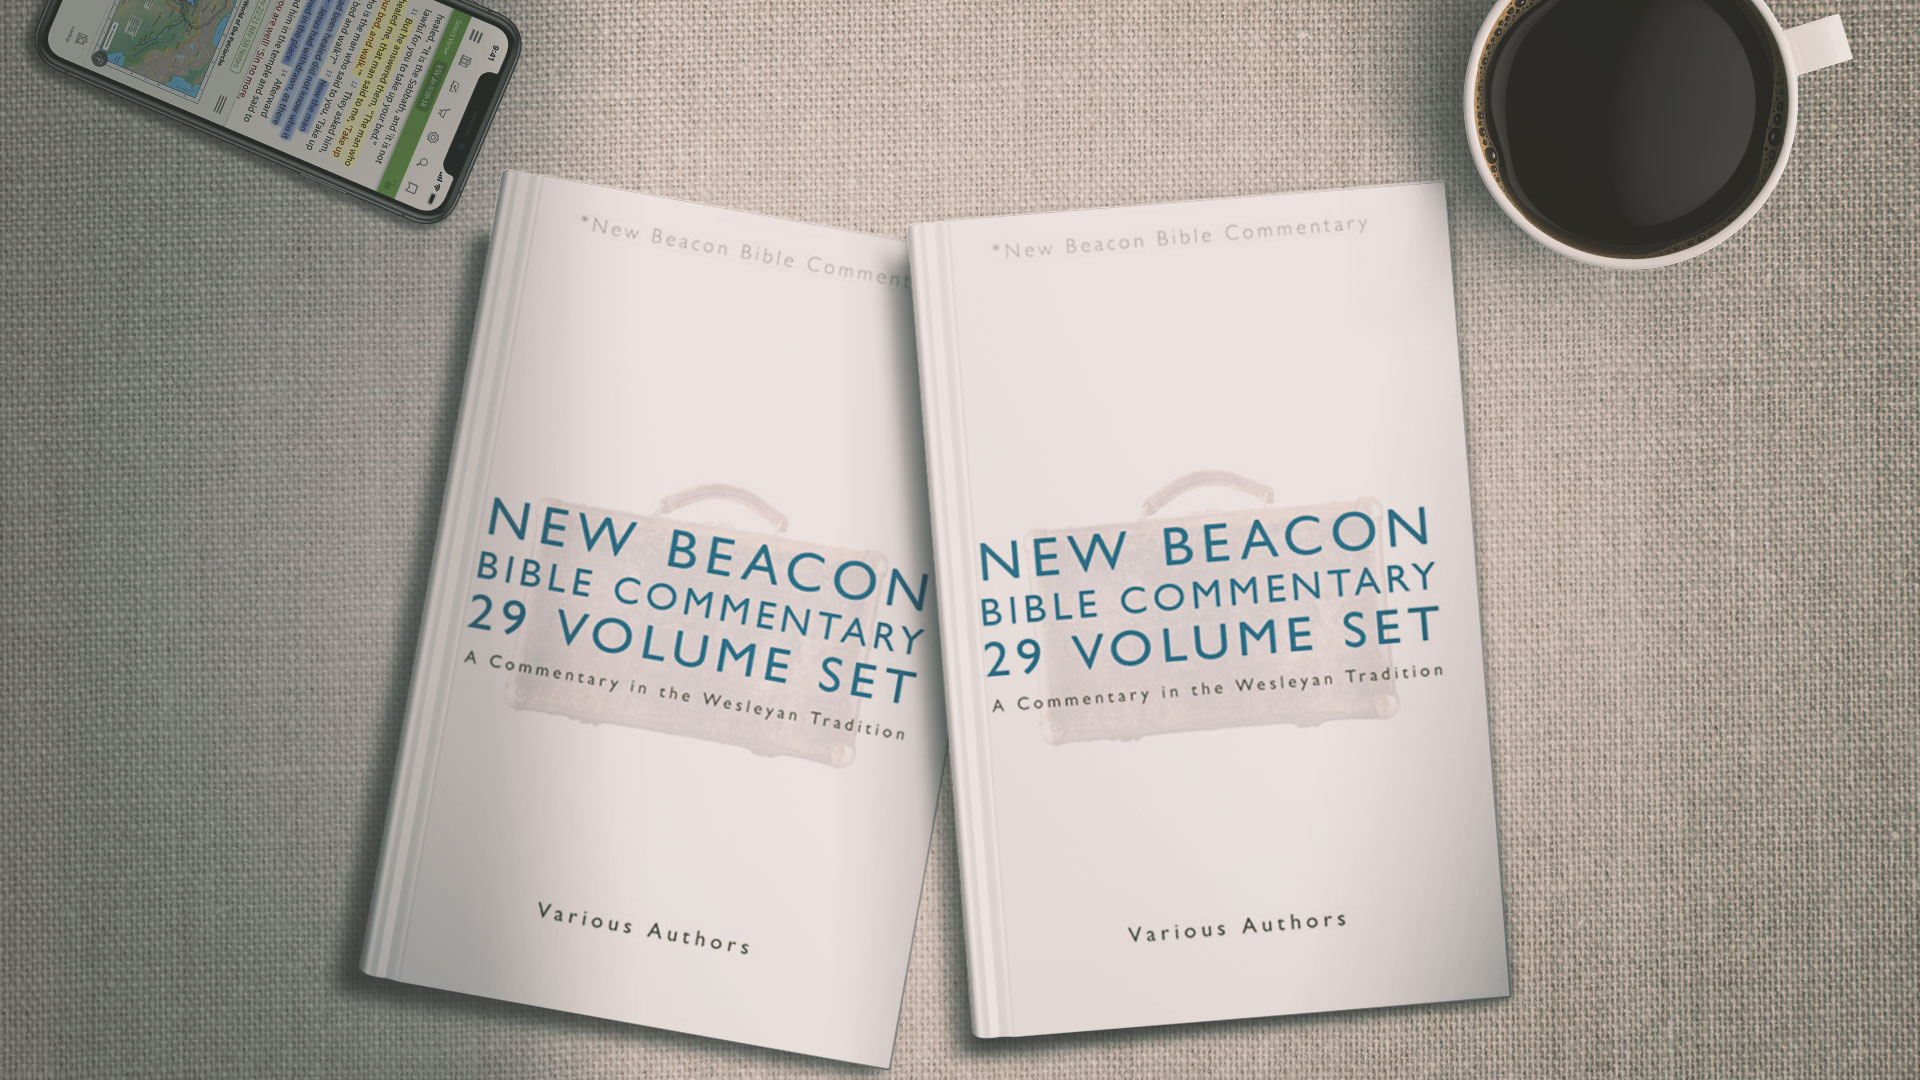 New Beacon Bible Commentary